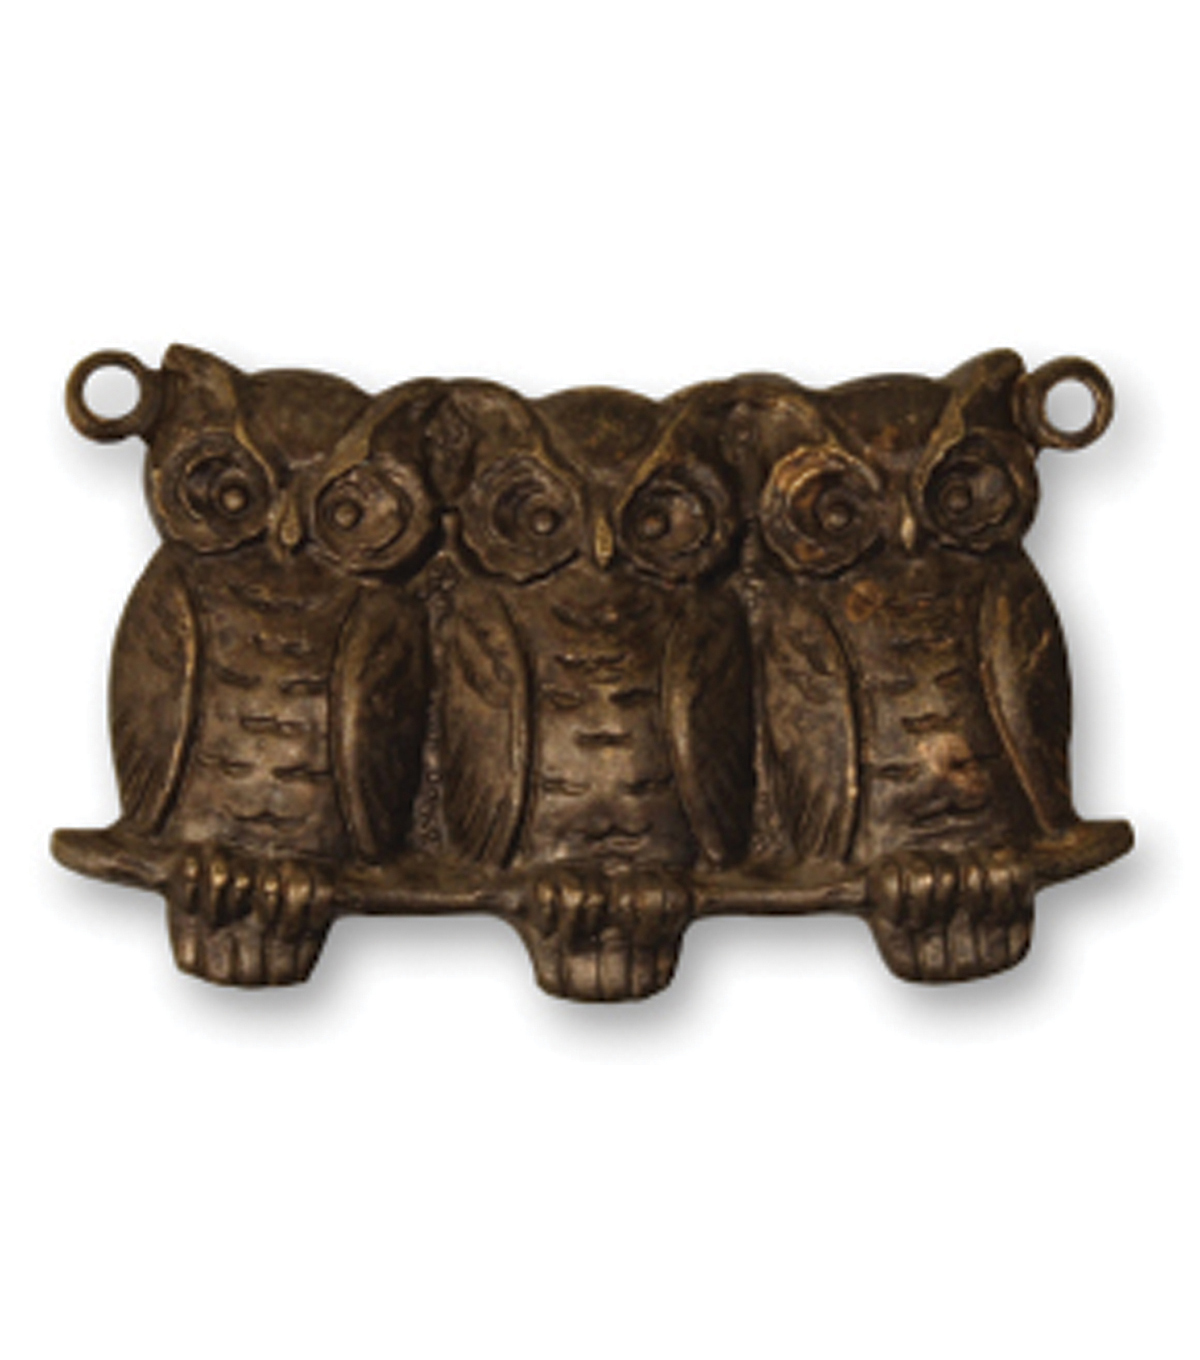 Vintaj Metal Accent-Perched Owls 22x11.5mm